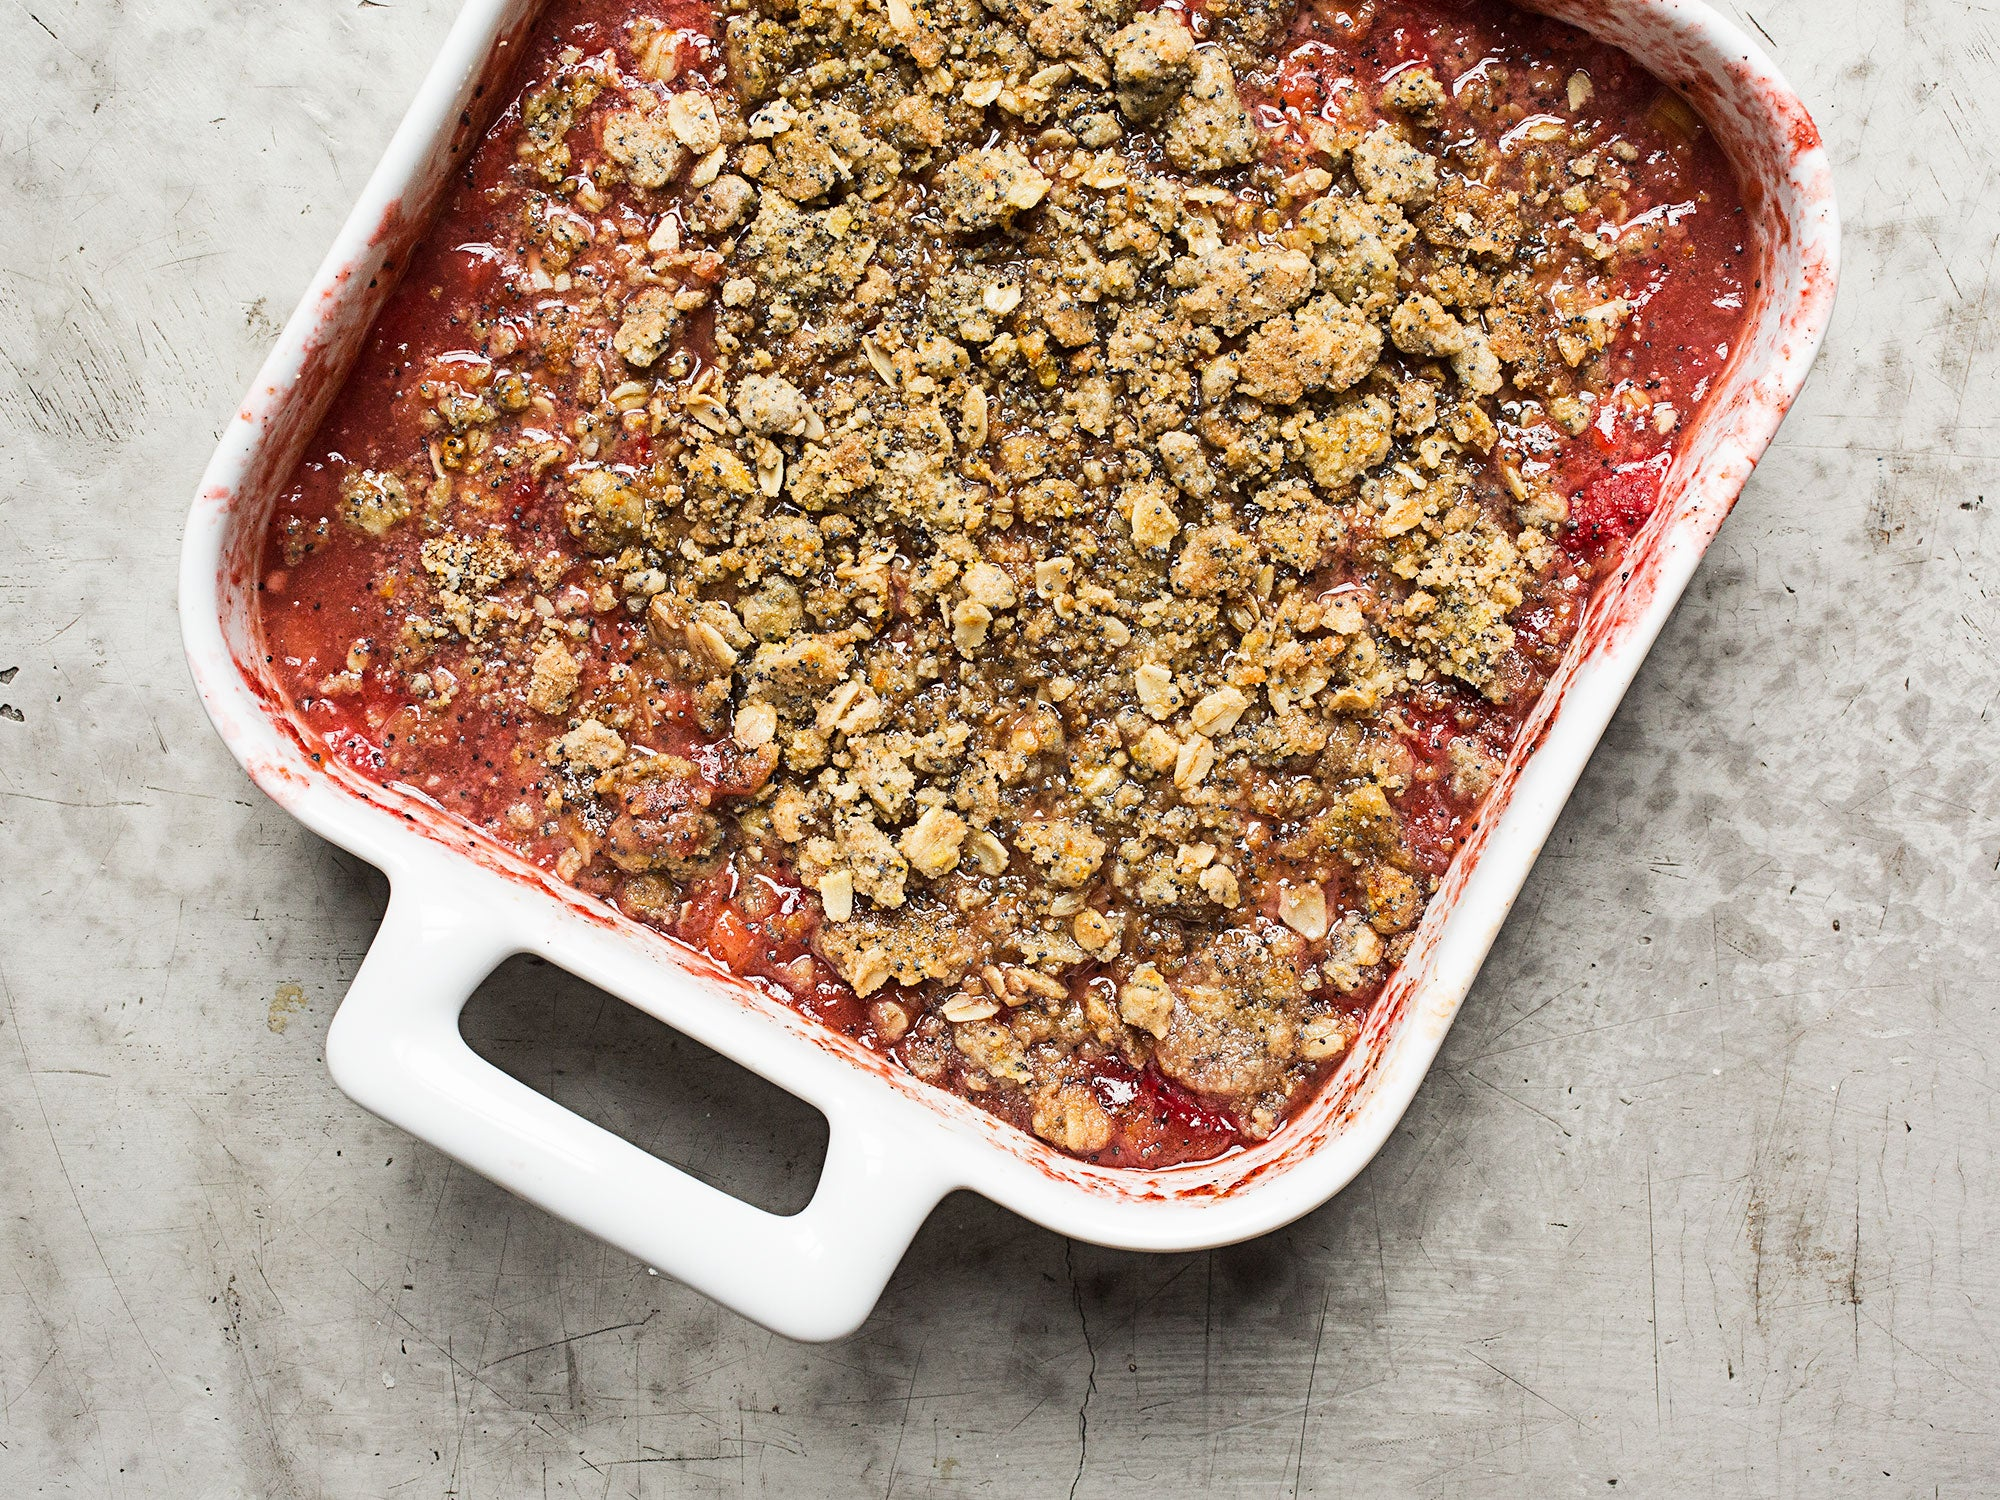 Wine-Poached Rhubarb and Poppy Seed Crisp